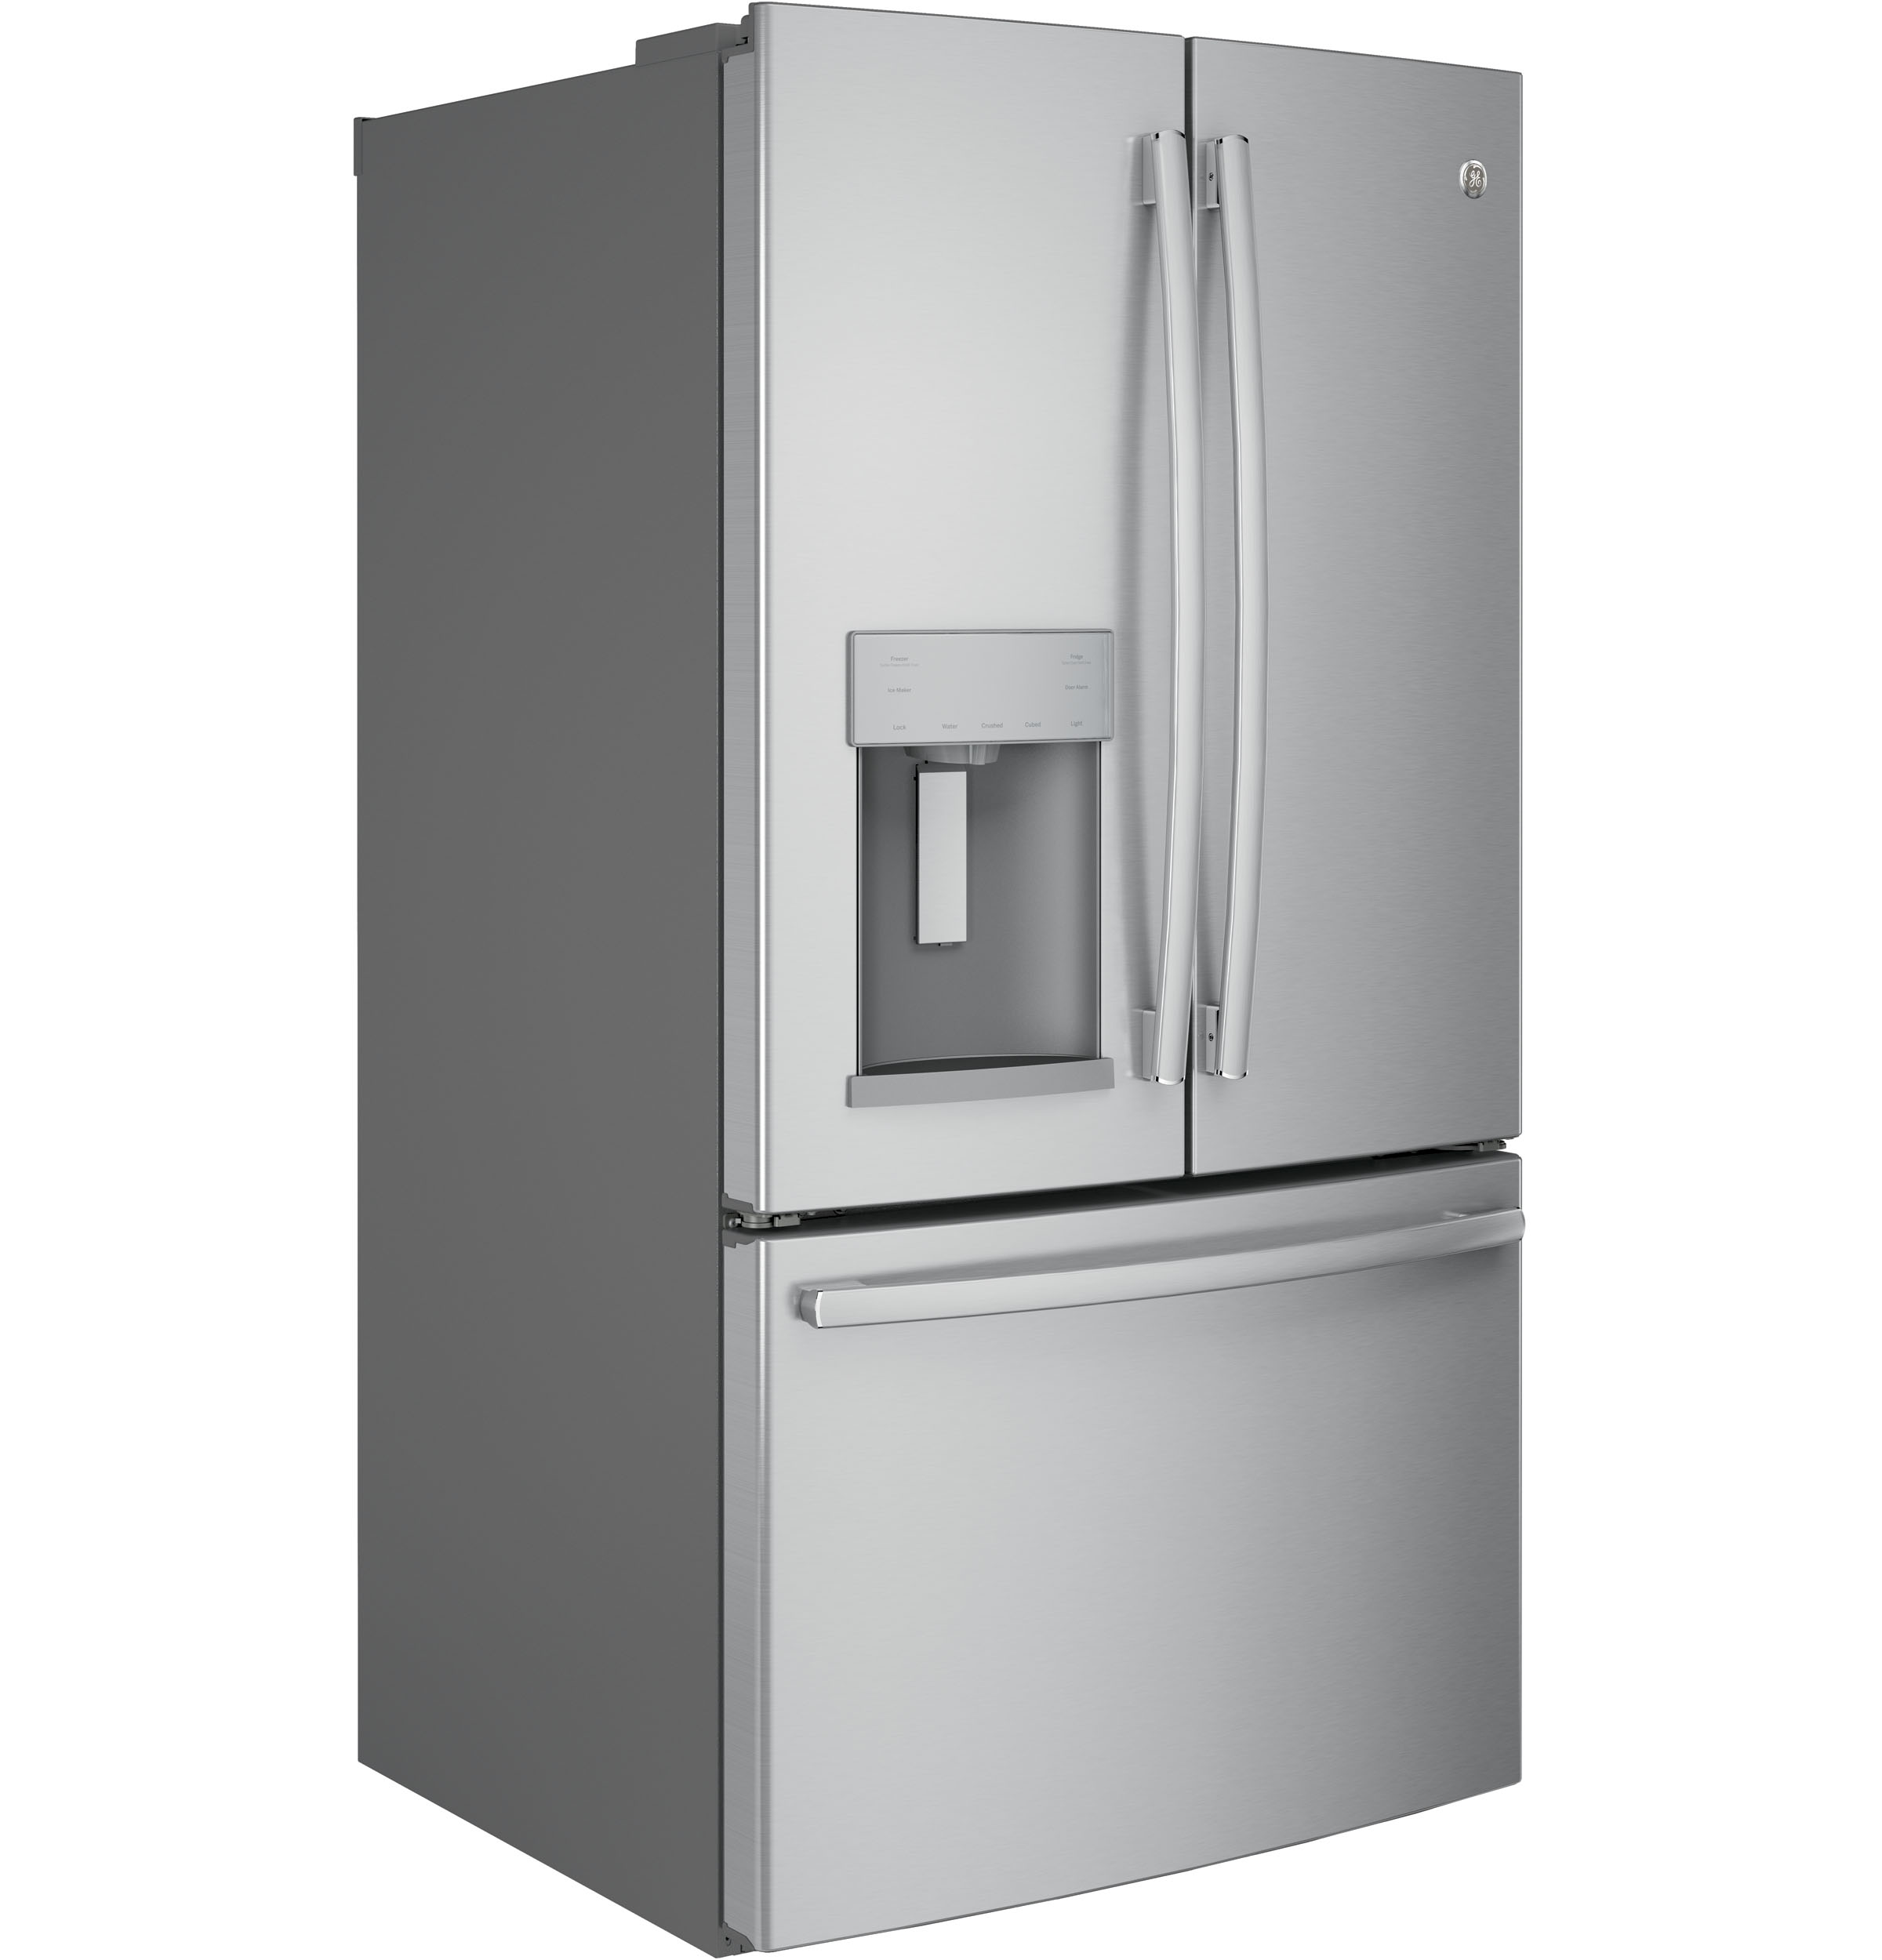 Model: GFE28HSKSS | GE® ENERGY STAR® 27.8 Cu. Ft. French-Door Refrigerator